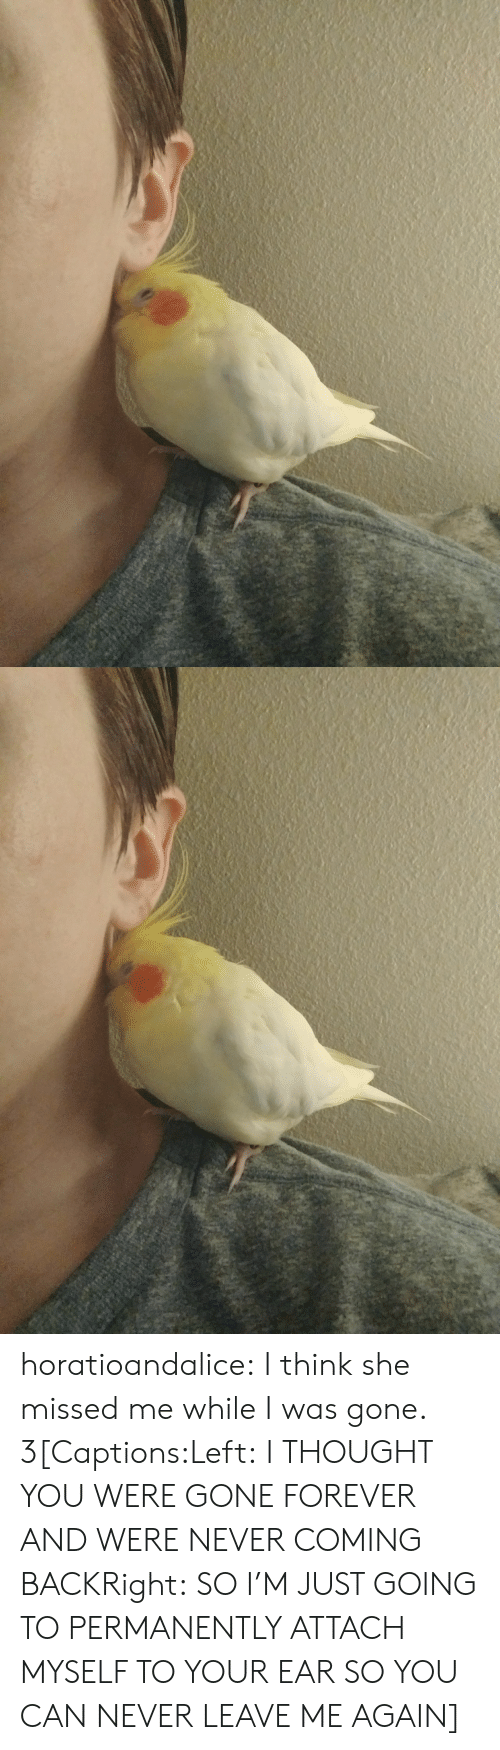 Tumblr, Blog, and Forever: horatioandalice:  I think she missed me while I was gone.  3[Captions:Left: I THOUGHT YOU WERE GONE FOREVER AND WERE NEVER COMING BACKRight: SO I'M JUST GOING TO PERMANENTLY ATTACH MYSELF TO YOUR EAR SO YOU CAN NEVER LEAVE ME AGAIN]